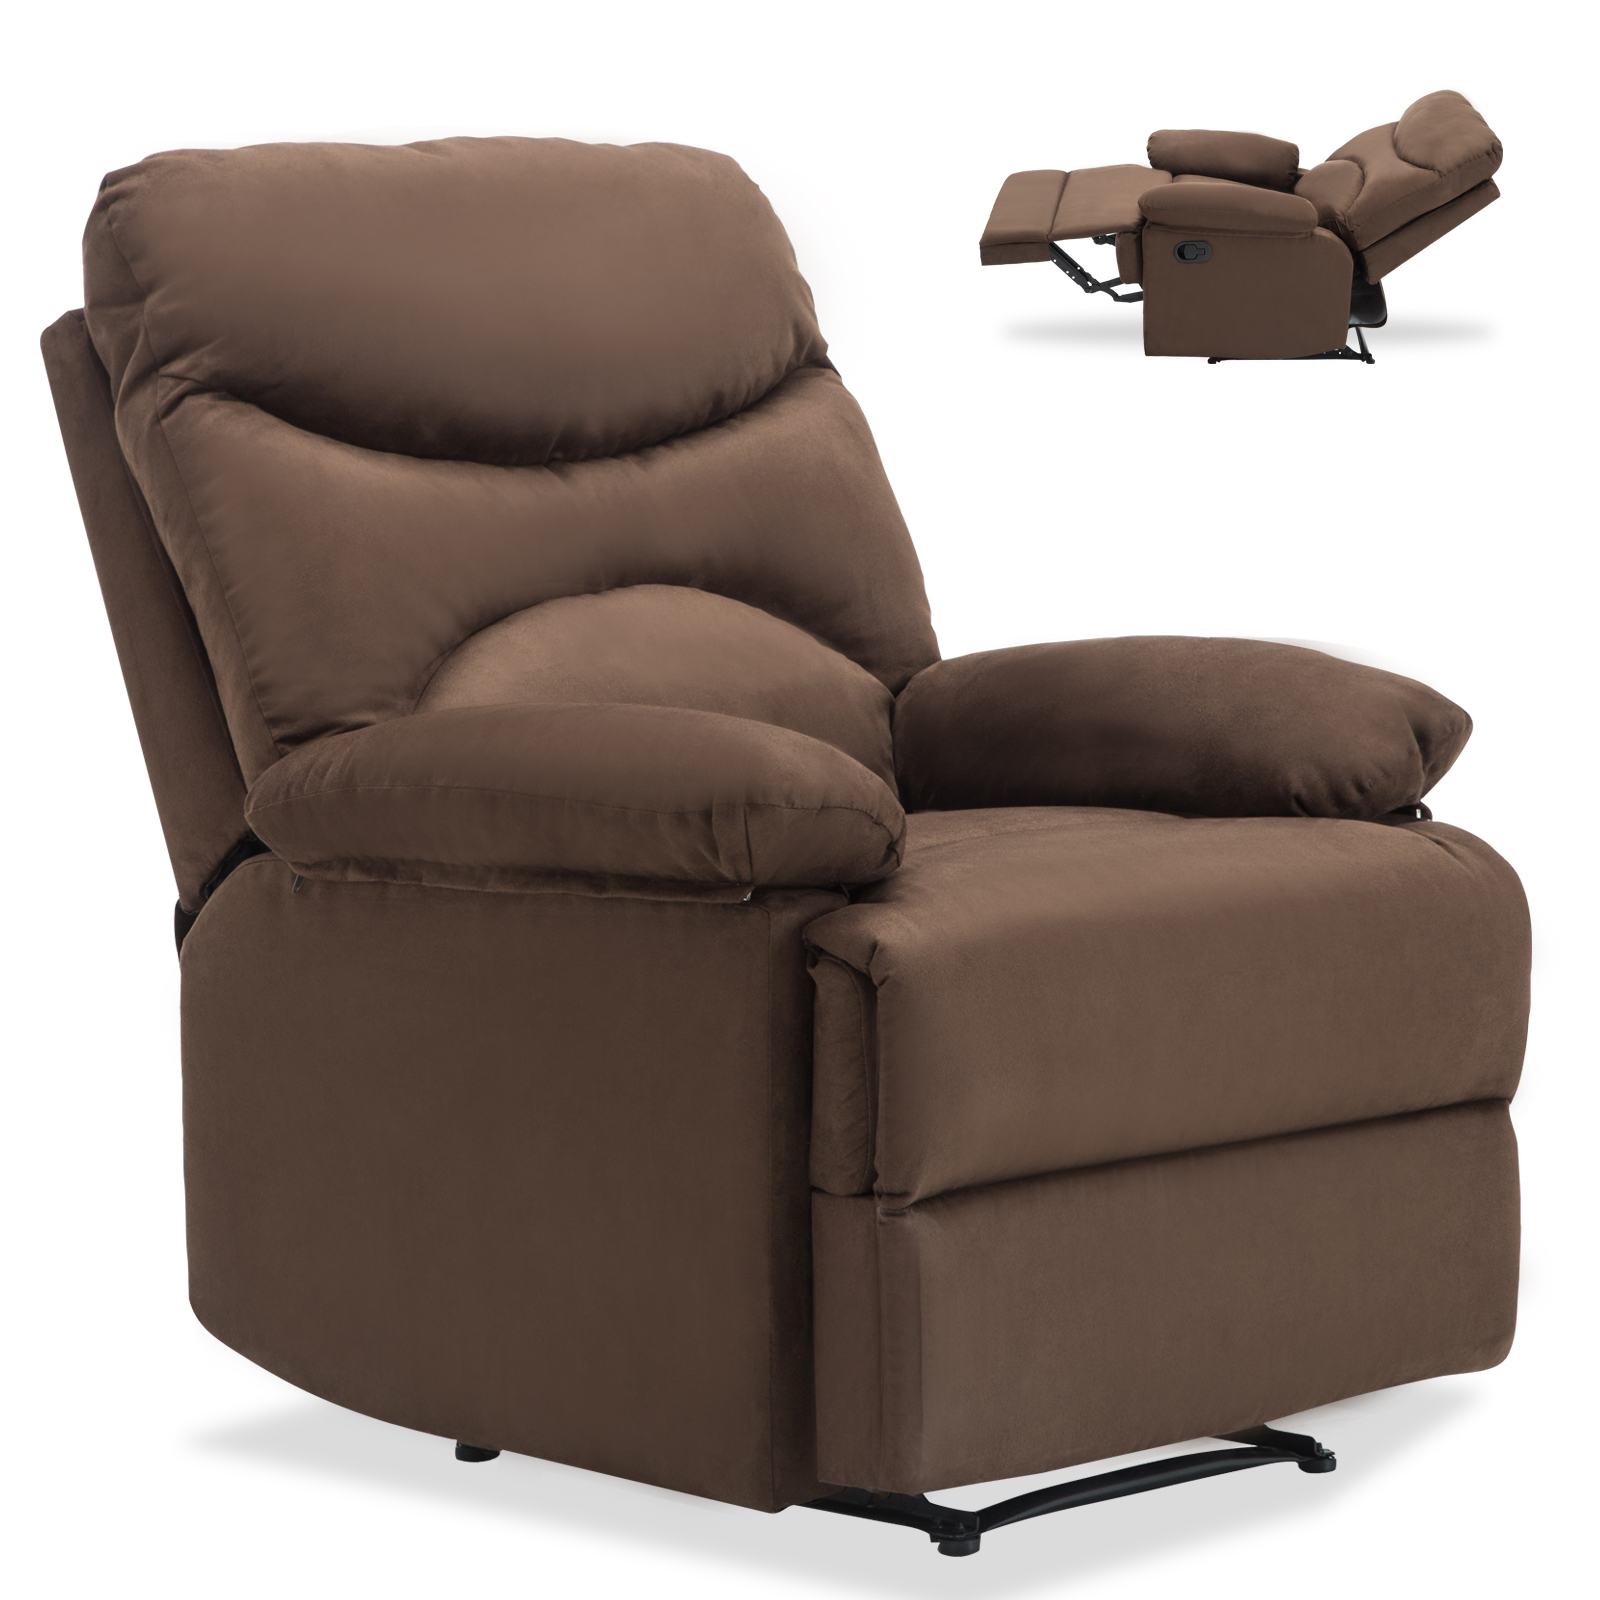 Reclining Lounge Chair Ergonomic Lounge Heated Microfiber Massage Recliner Sofa